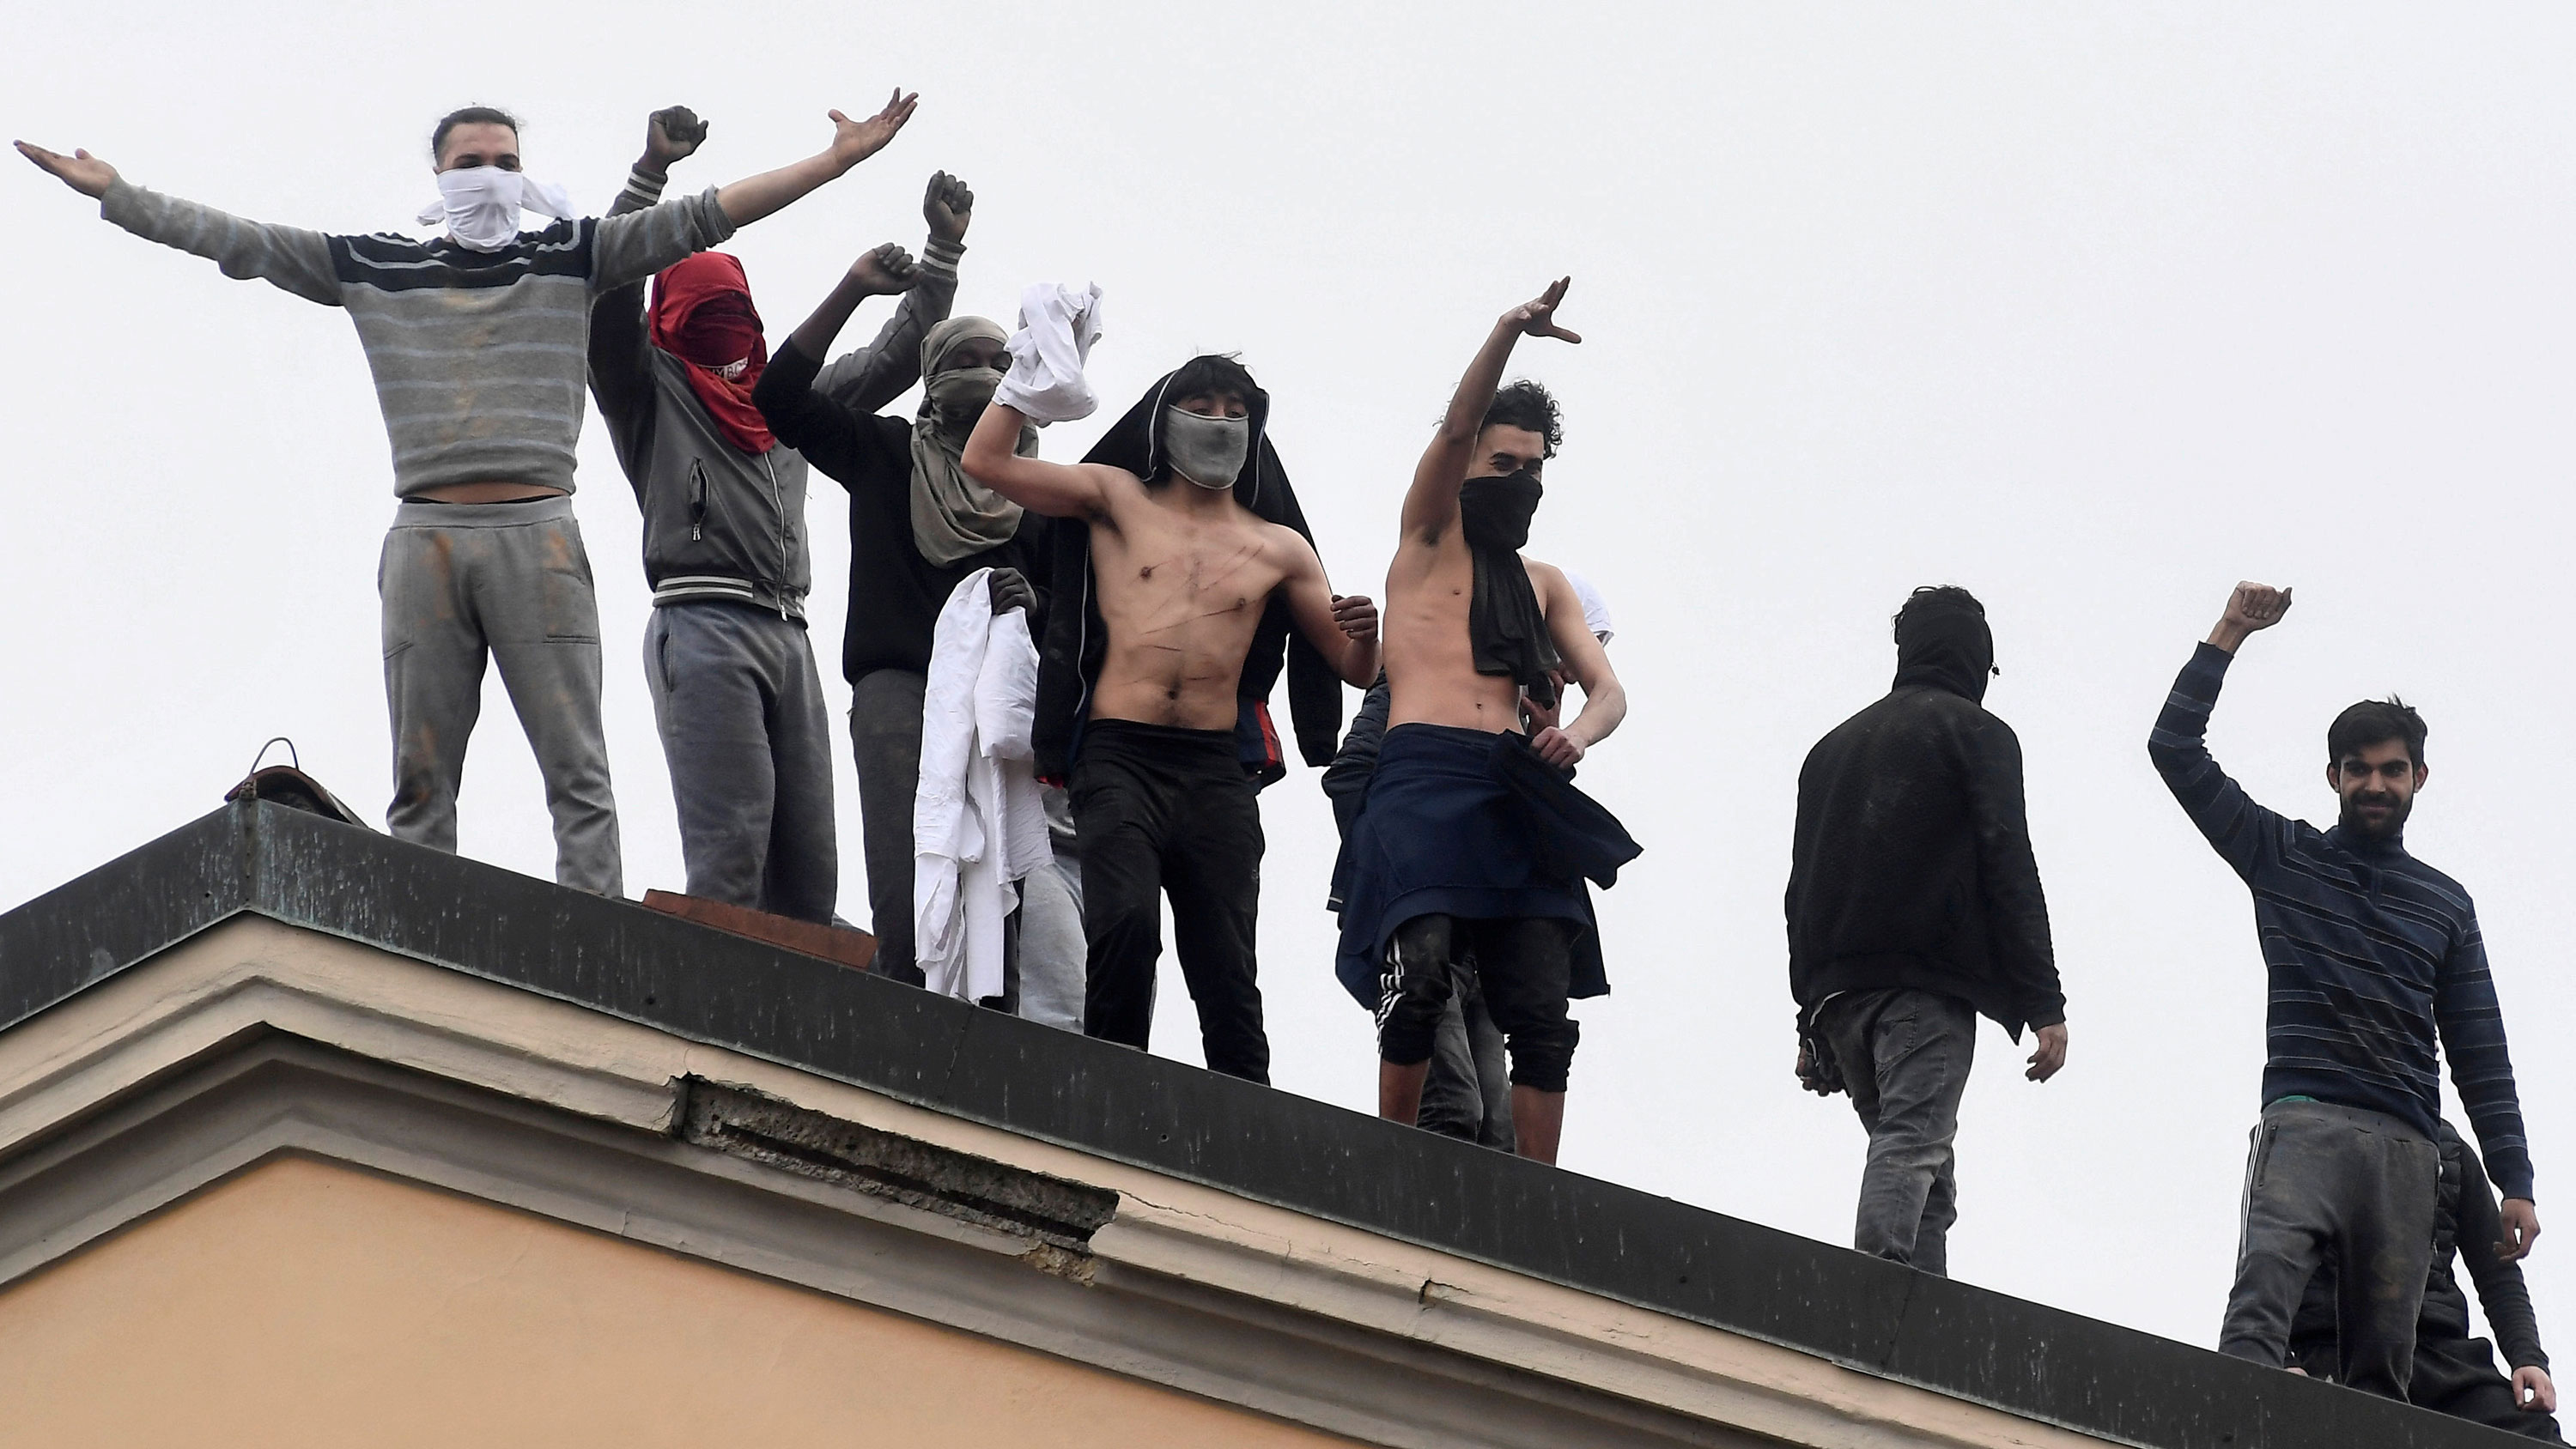 The photo shows a number of inmates, some with bandanas over their faces, on the roof of a prison building shouting at the camera, which appears to be some distance away.